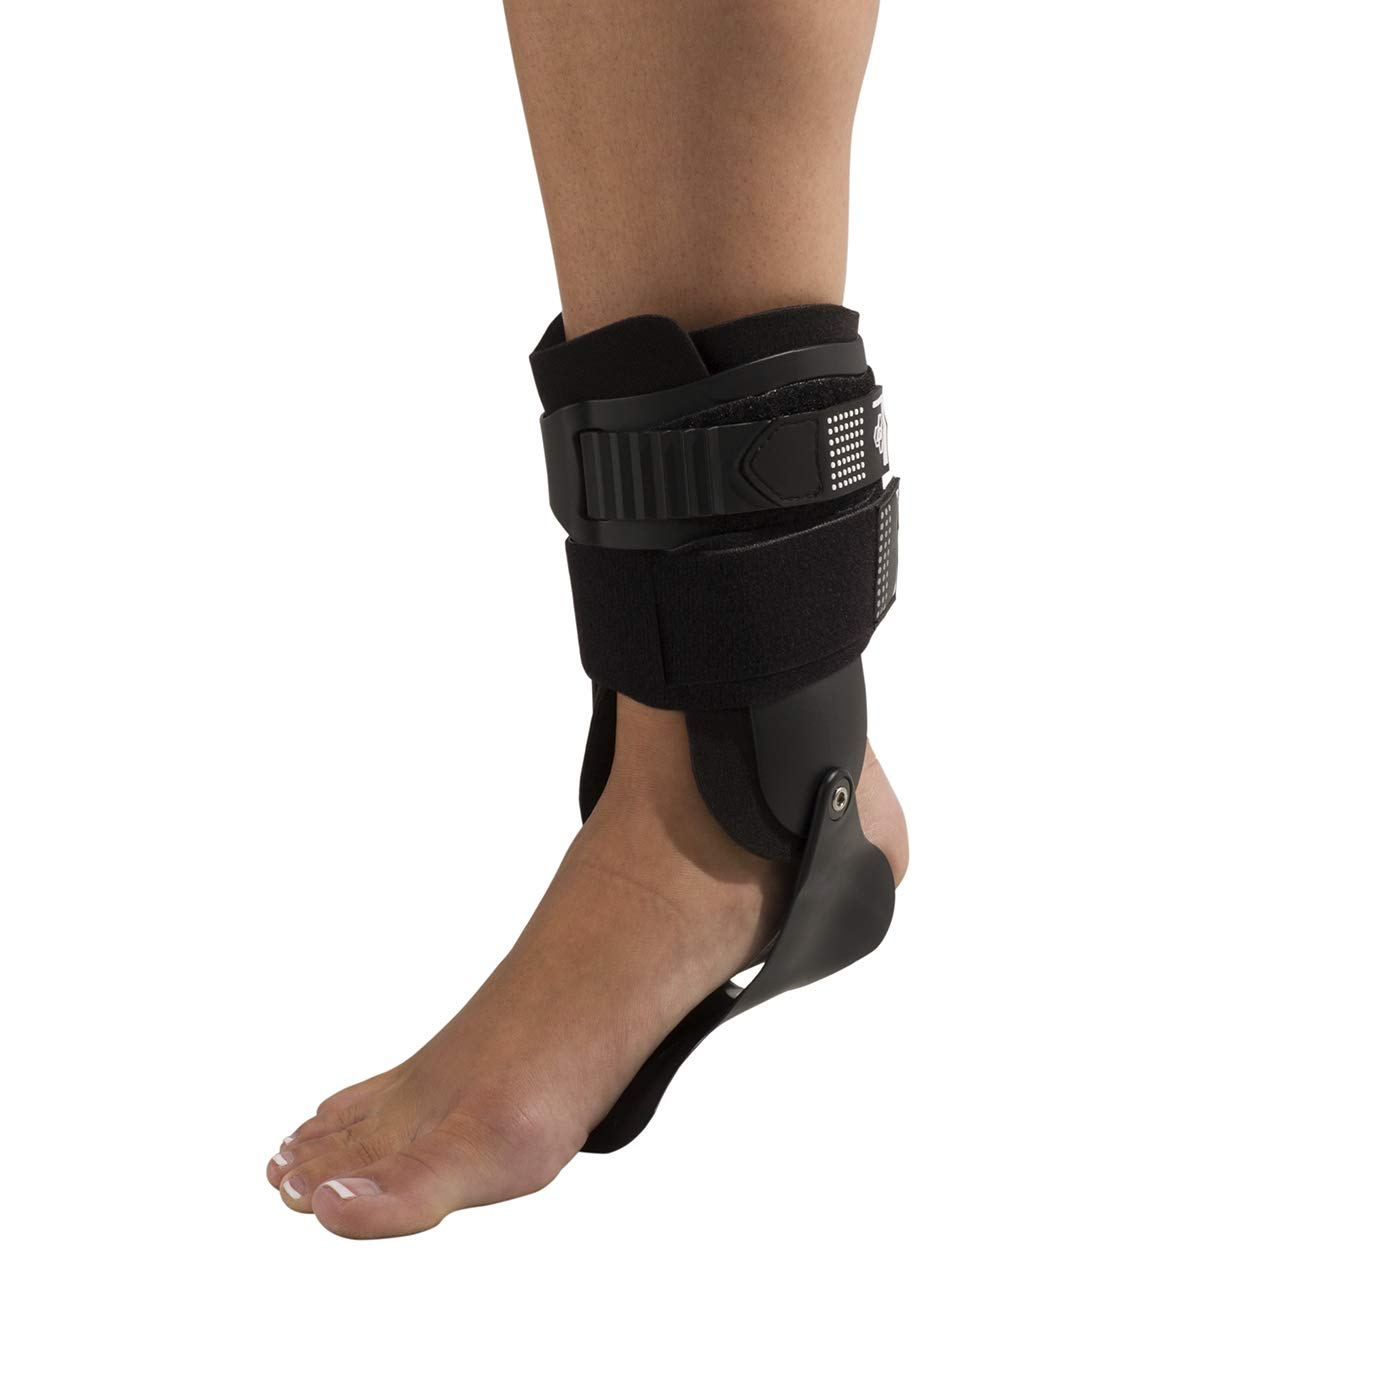 DonJoy Performance Bionic Stirrup Ankle Braces (Right and Left Pair), Maximum Medial Lateral Ankle Support, Low-Profile Rigid Brace, Adjustable - Black, Medium - Value Bundle by DonJoy Performance (Image #2)